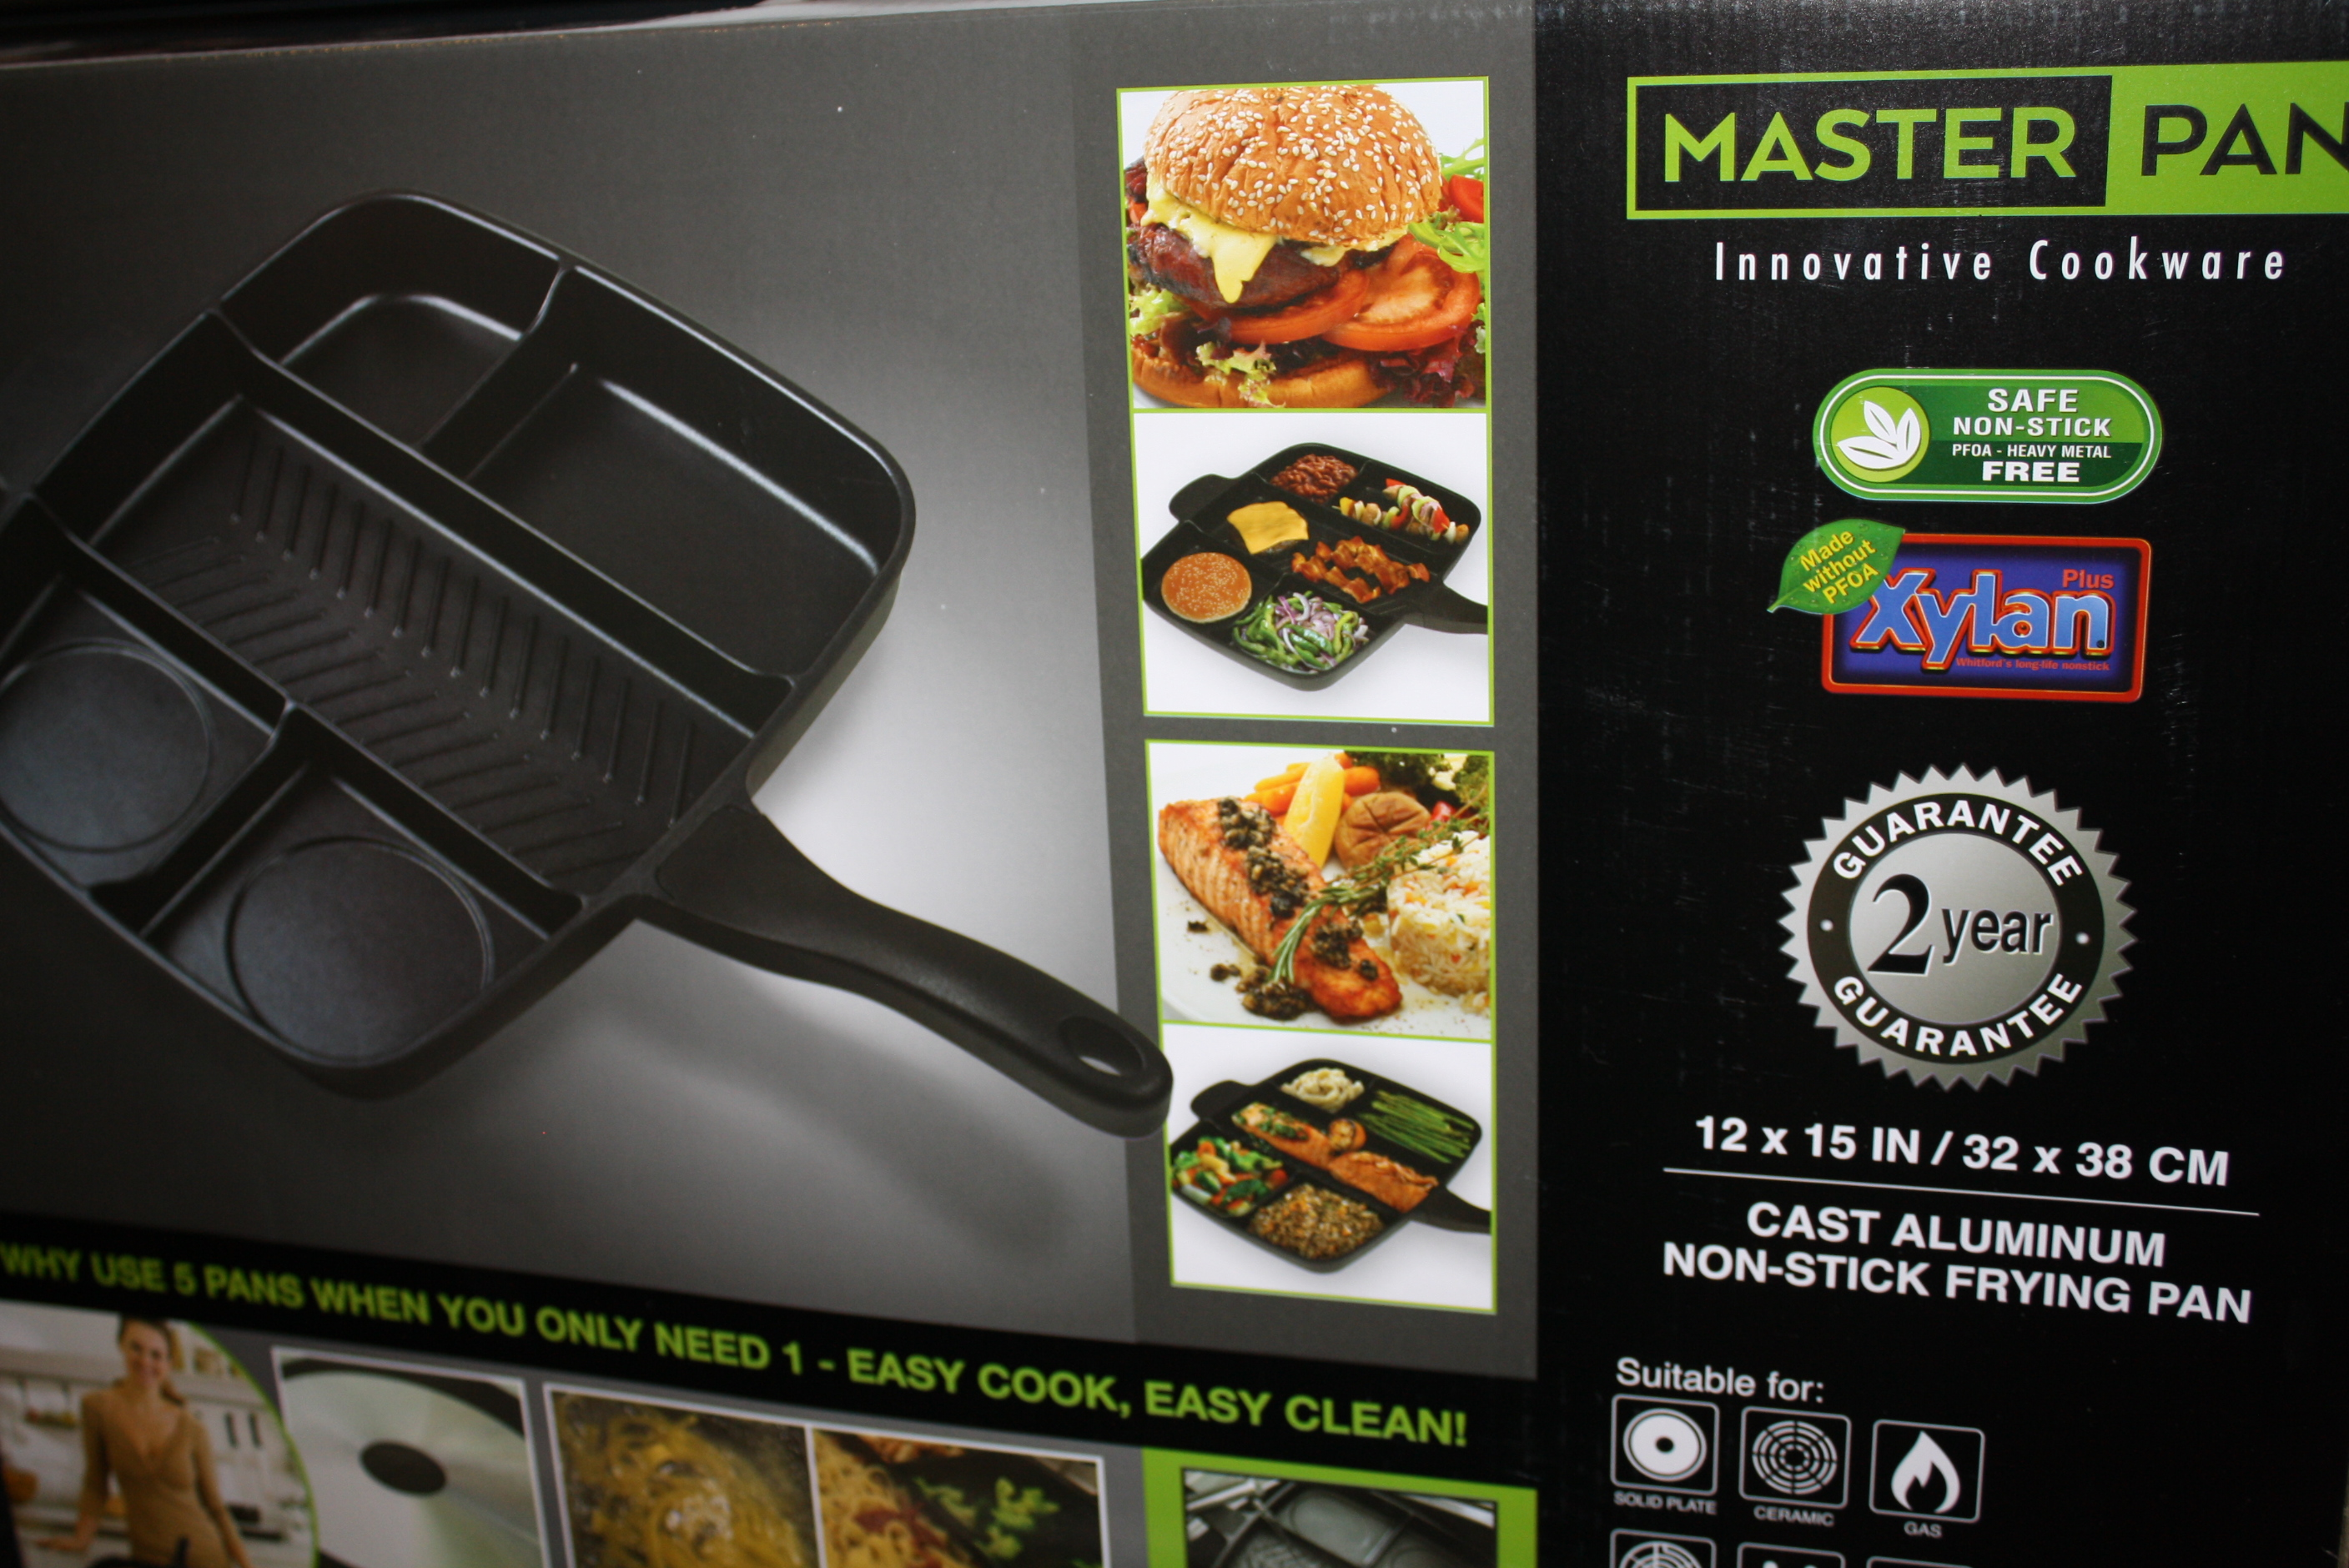 Master Pan – The Last Pan You Will Ever Need